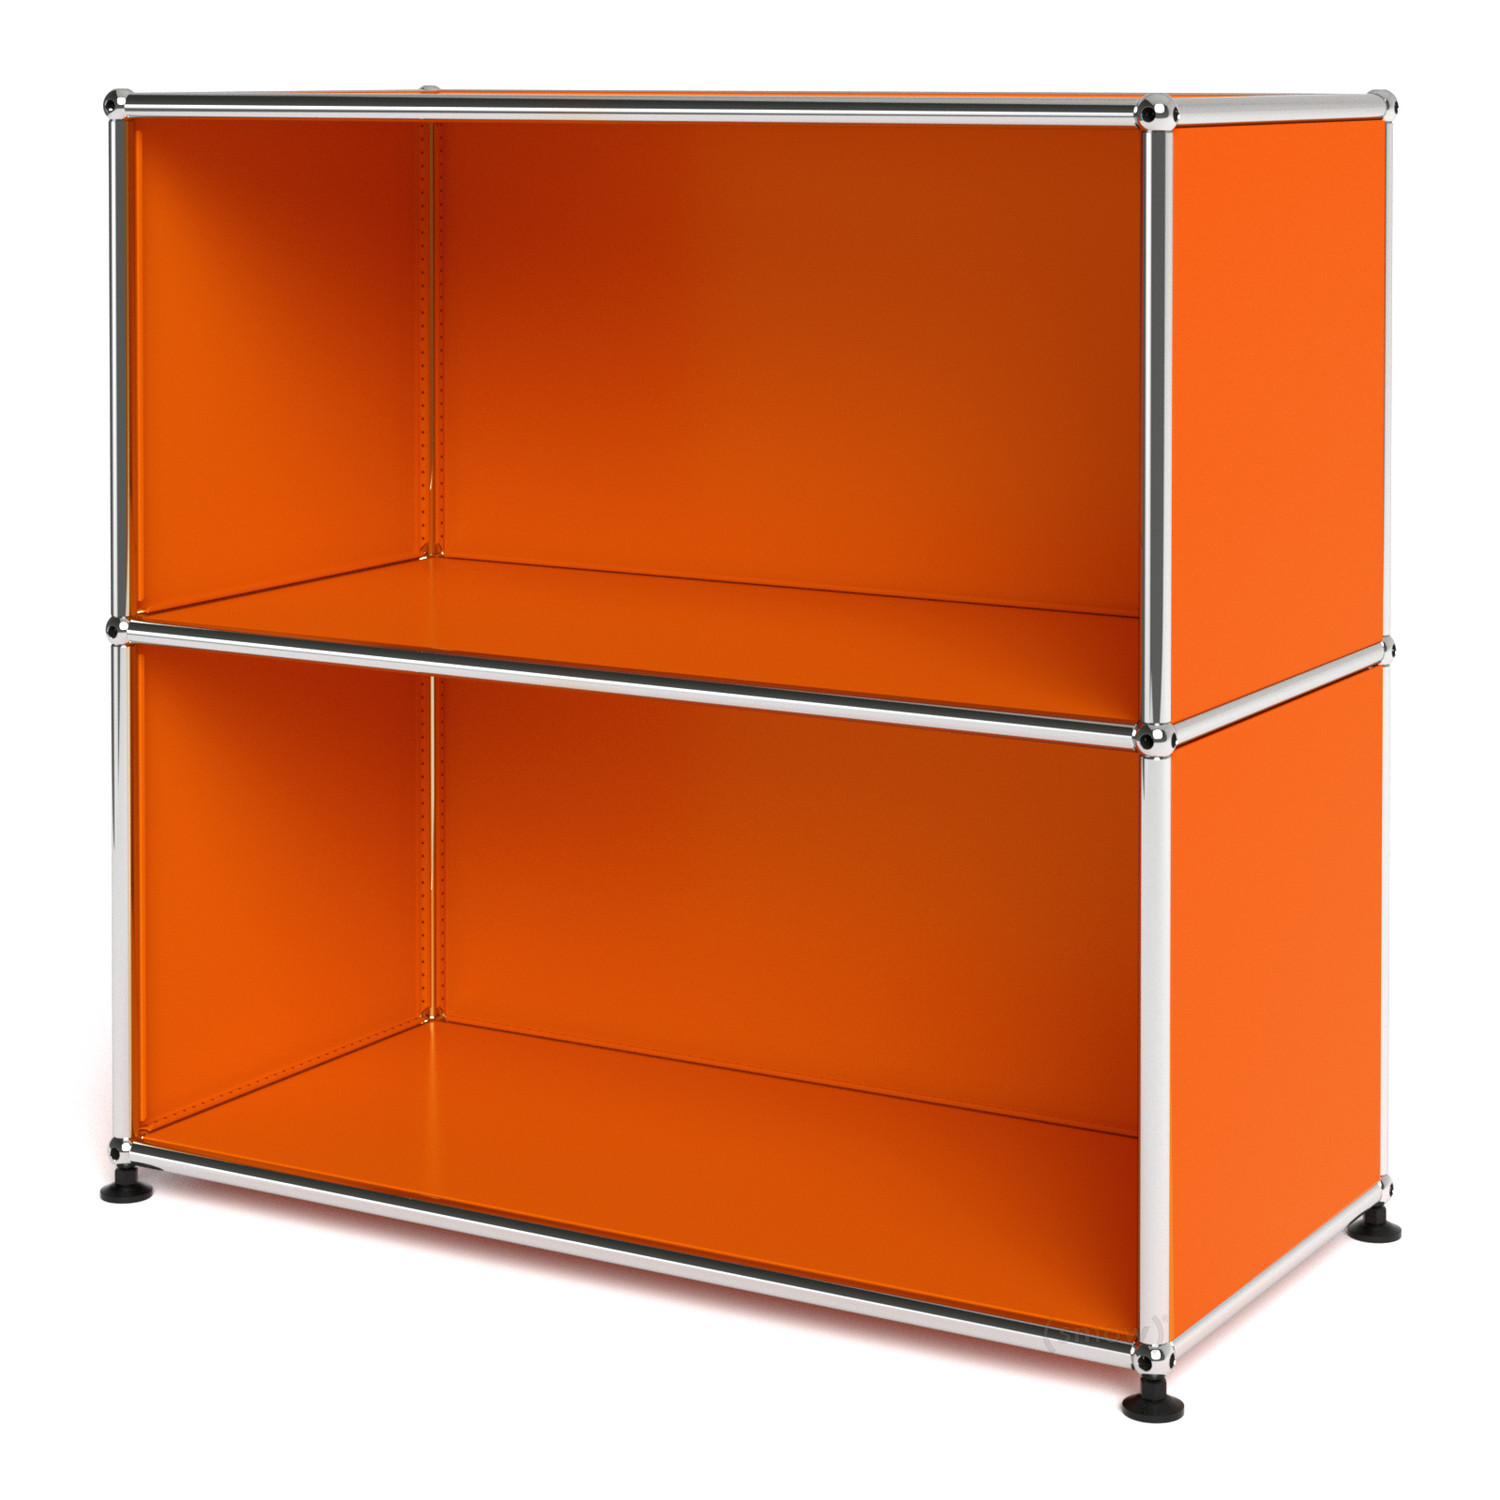 usm haller sideboard m open pure orange ral 2004 by fritz haller paul sch rer designer. Black Bedroom Furniture Sets. Home Design Ideas